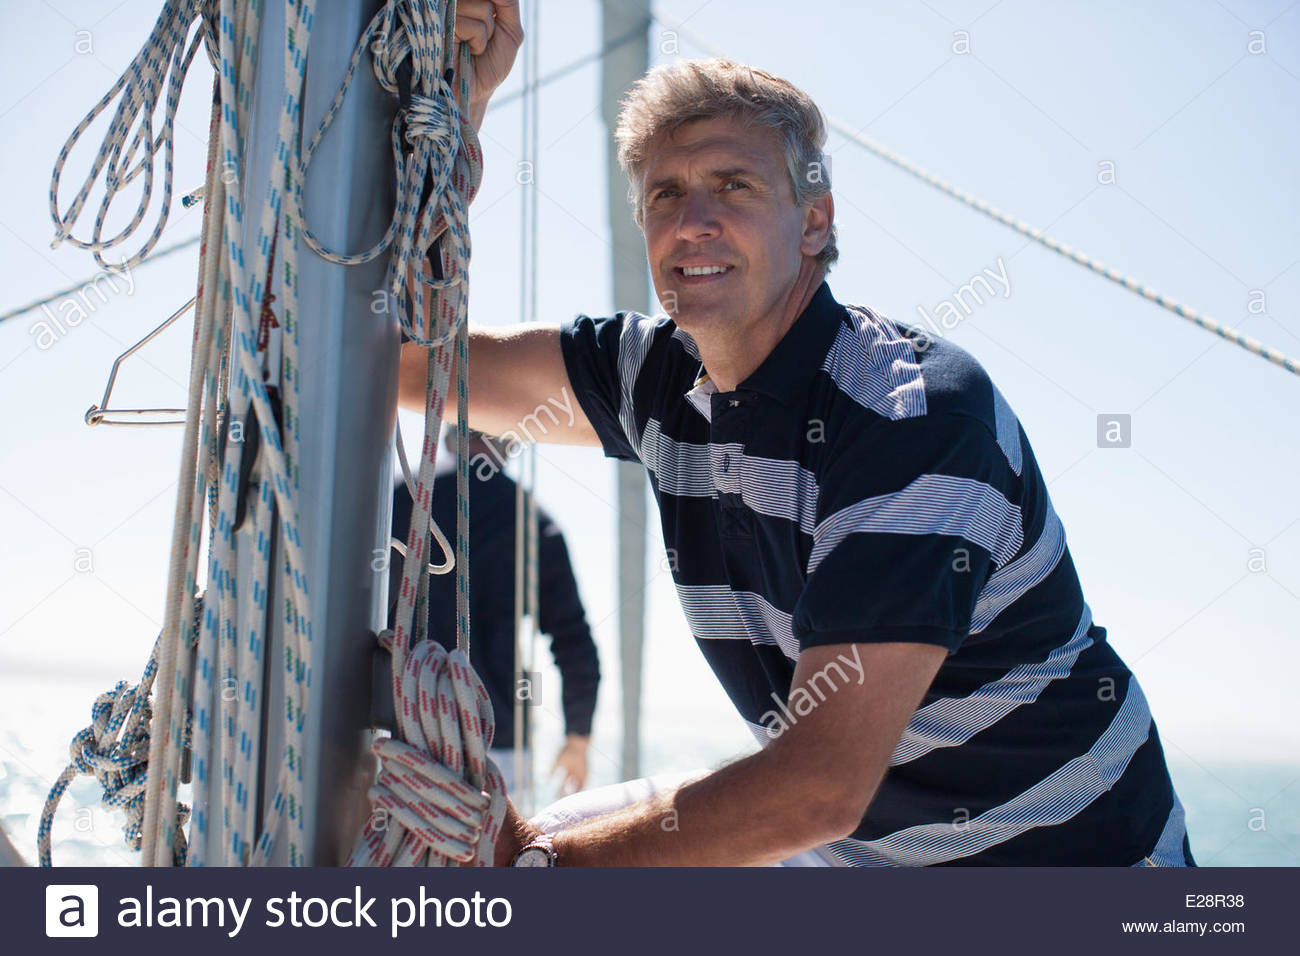 Man on deck of boat - Stock Image